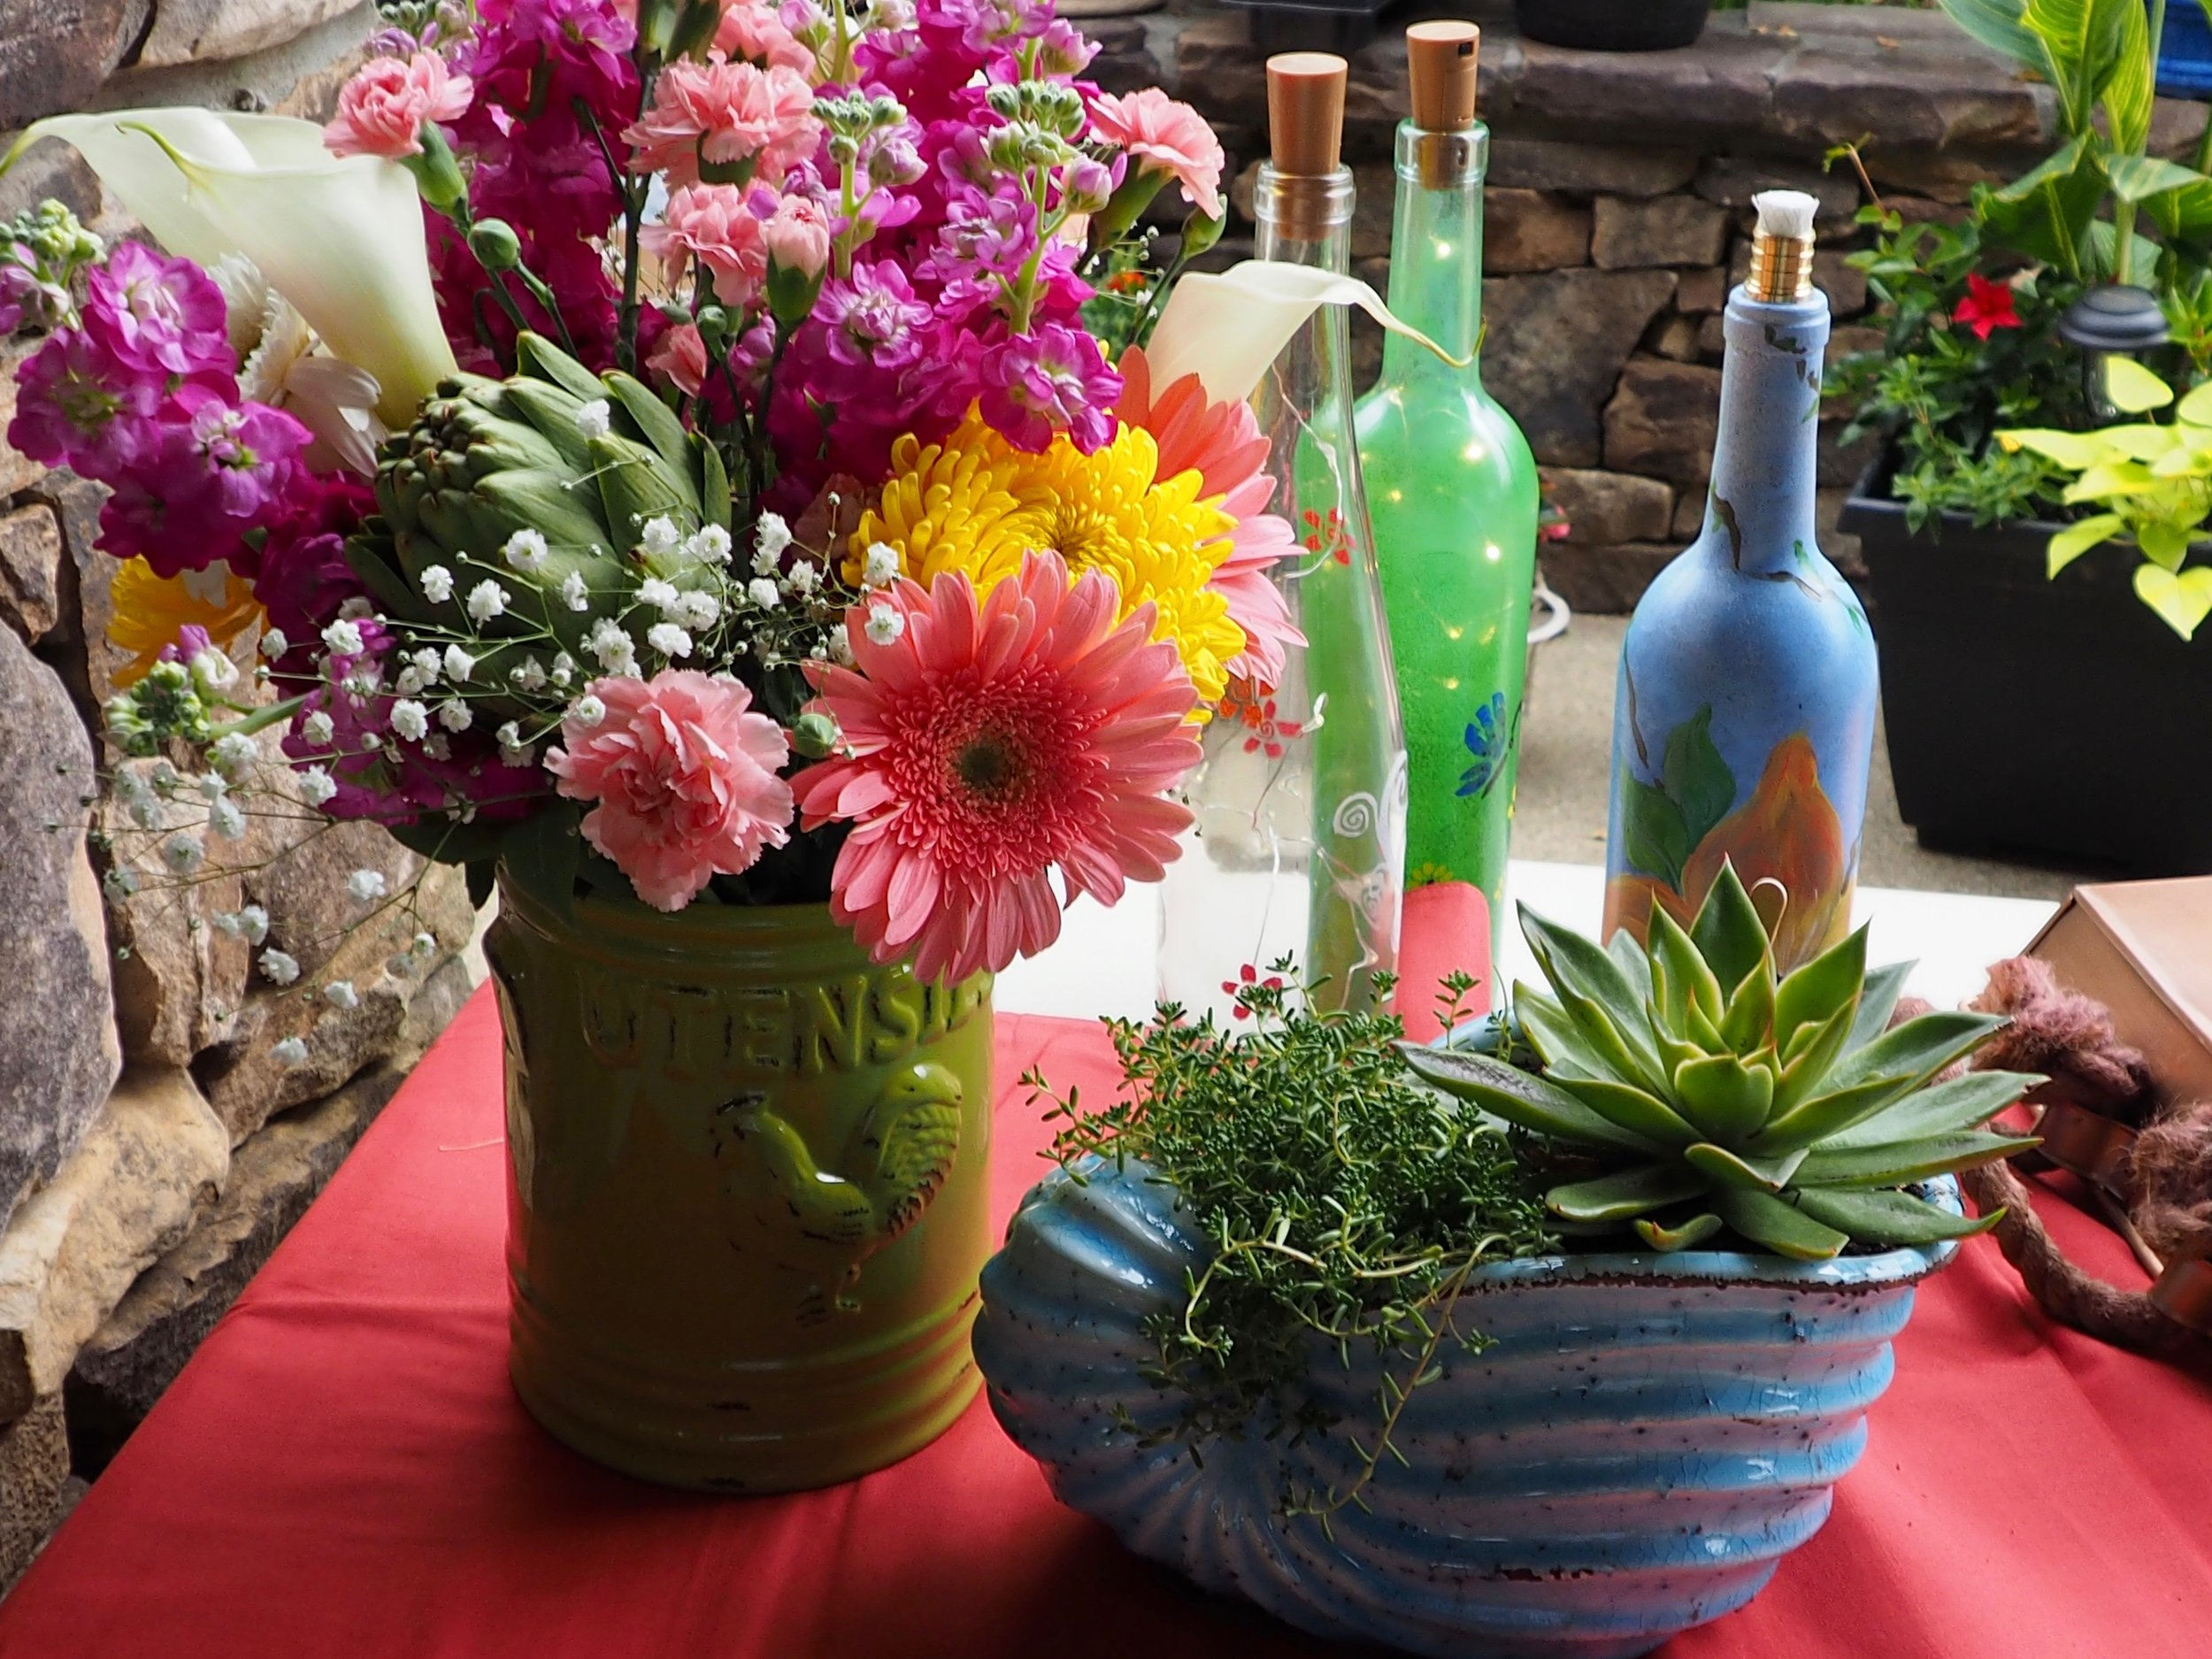 May's meeting was all about beautiful container gardens and cut flower arrangements.